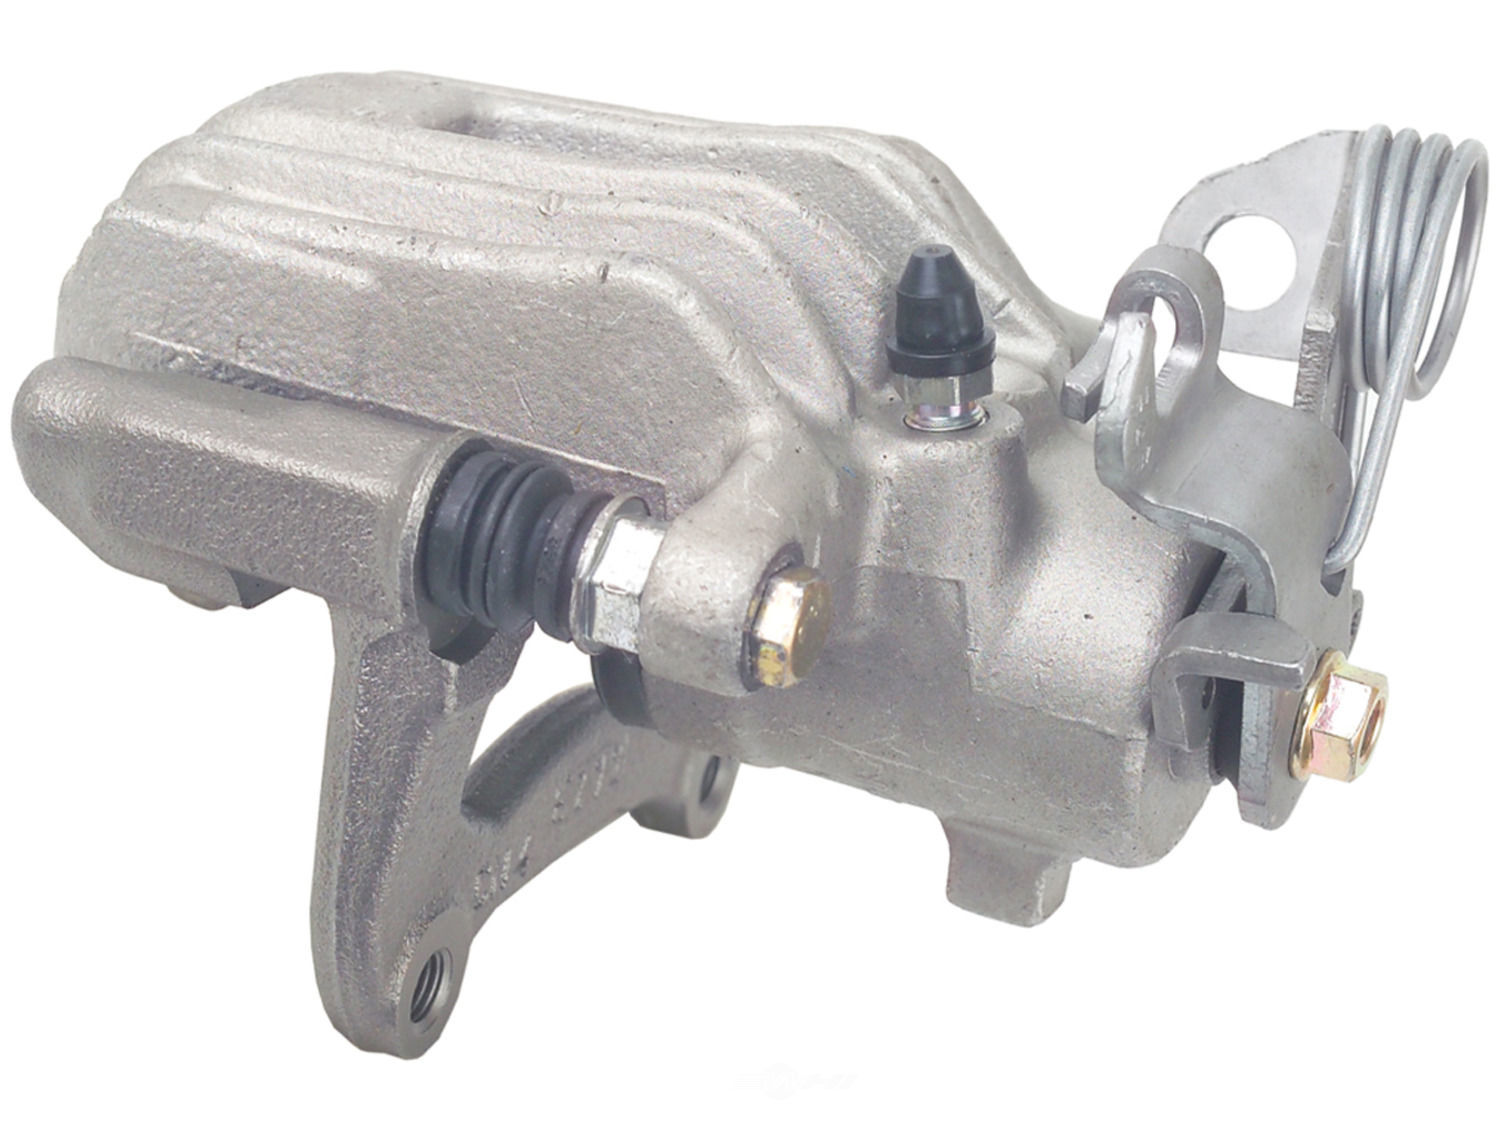 CARDONE/A-1 CARDONE - Remanufactured Friction Choice Caliper w/Bracket (Rear Right) - A1C 19-B2636